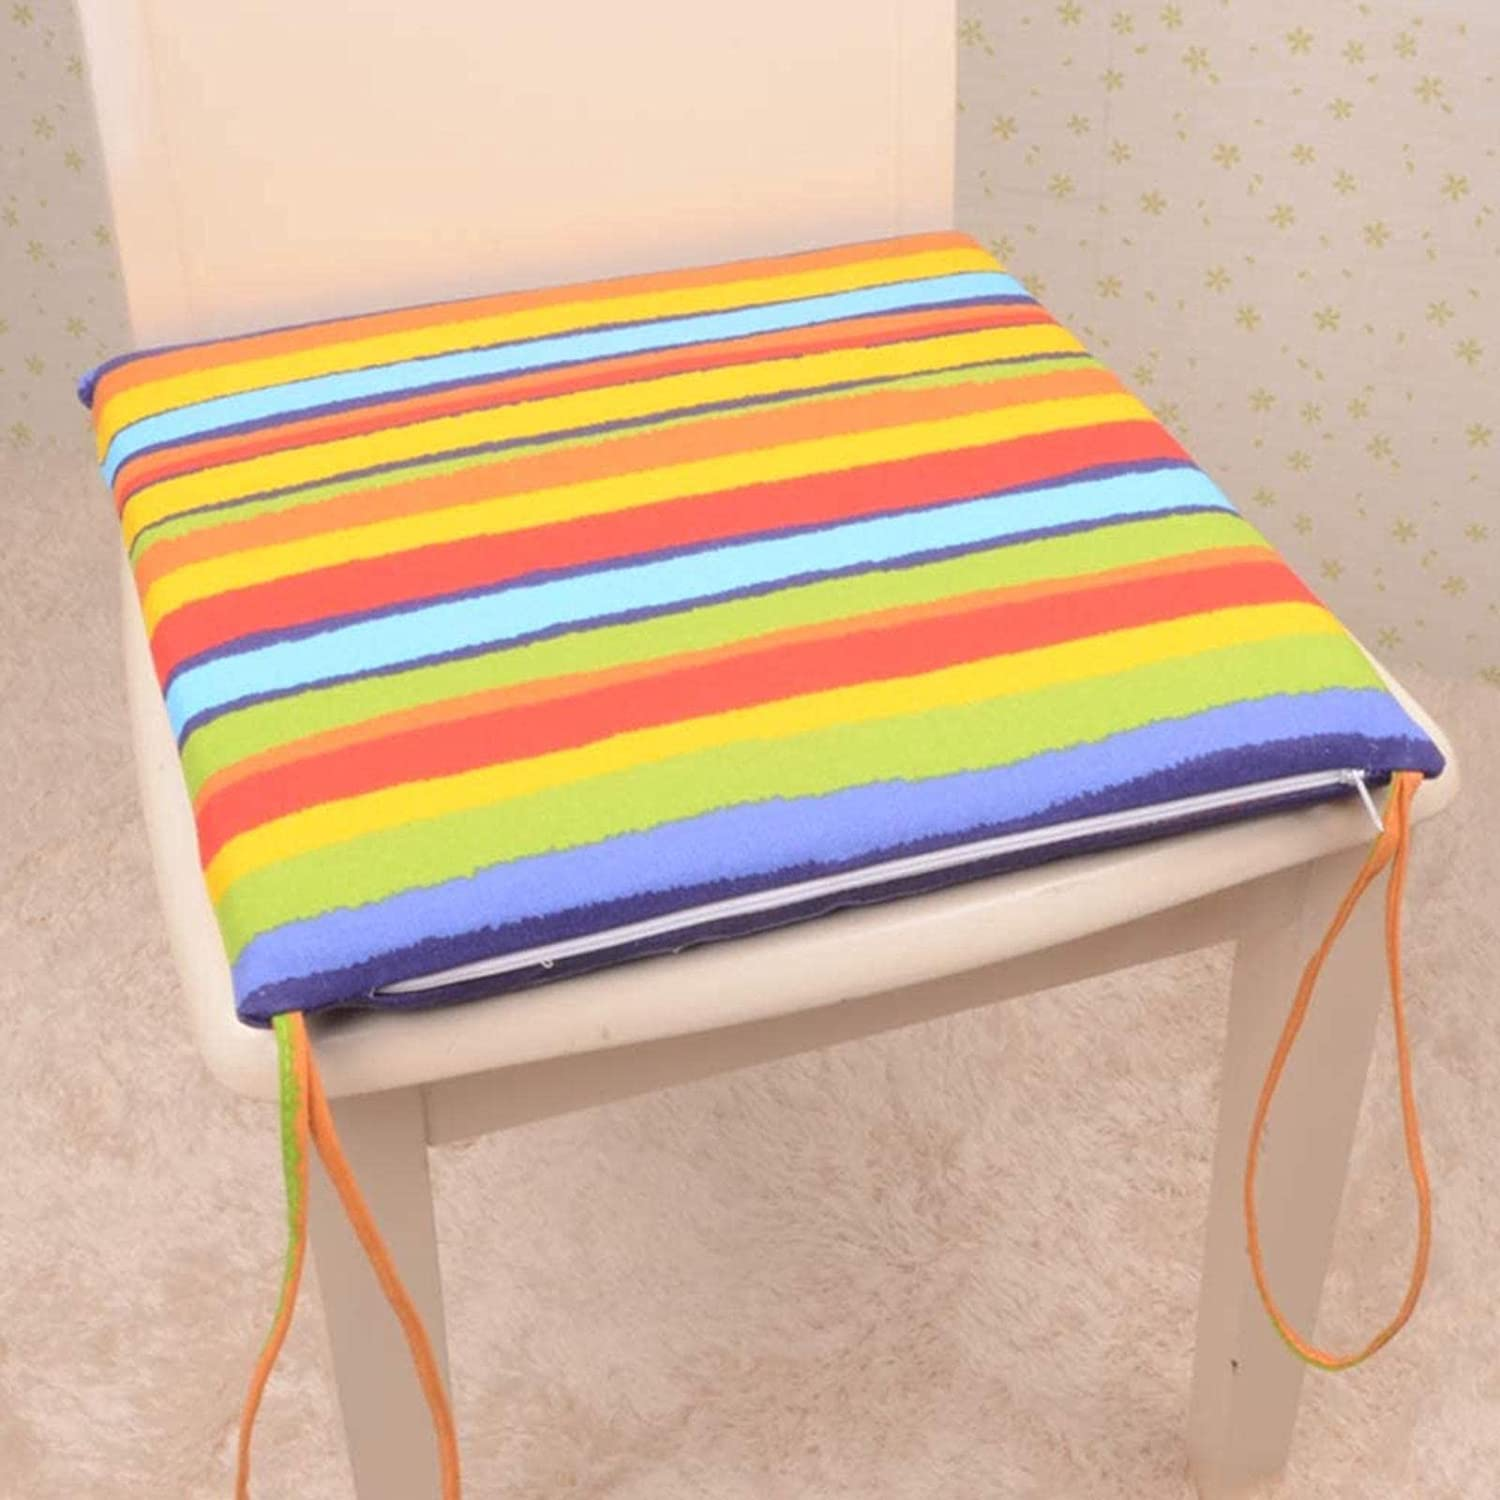 HZYDD Stripe Not-Slip Chair Pads Portable Sale SALE% OFF Cushio Soft Long Beach Mall Cozy Seat